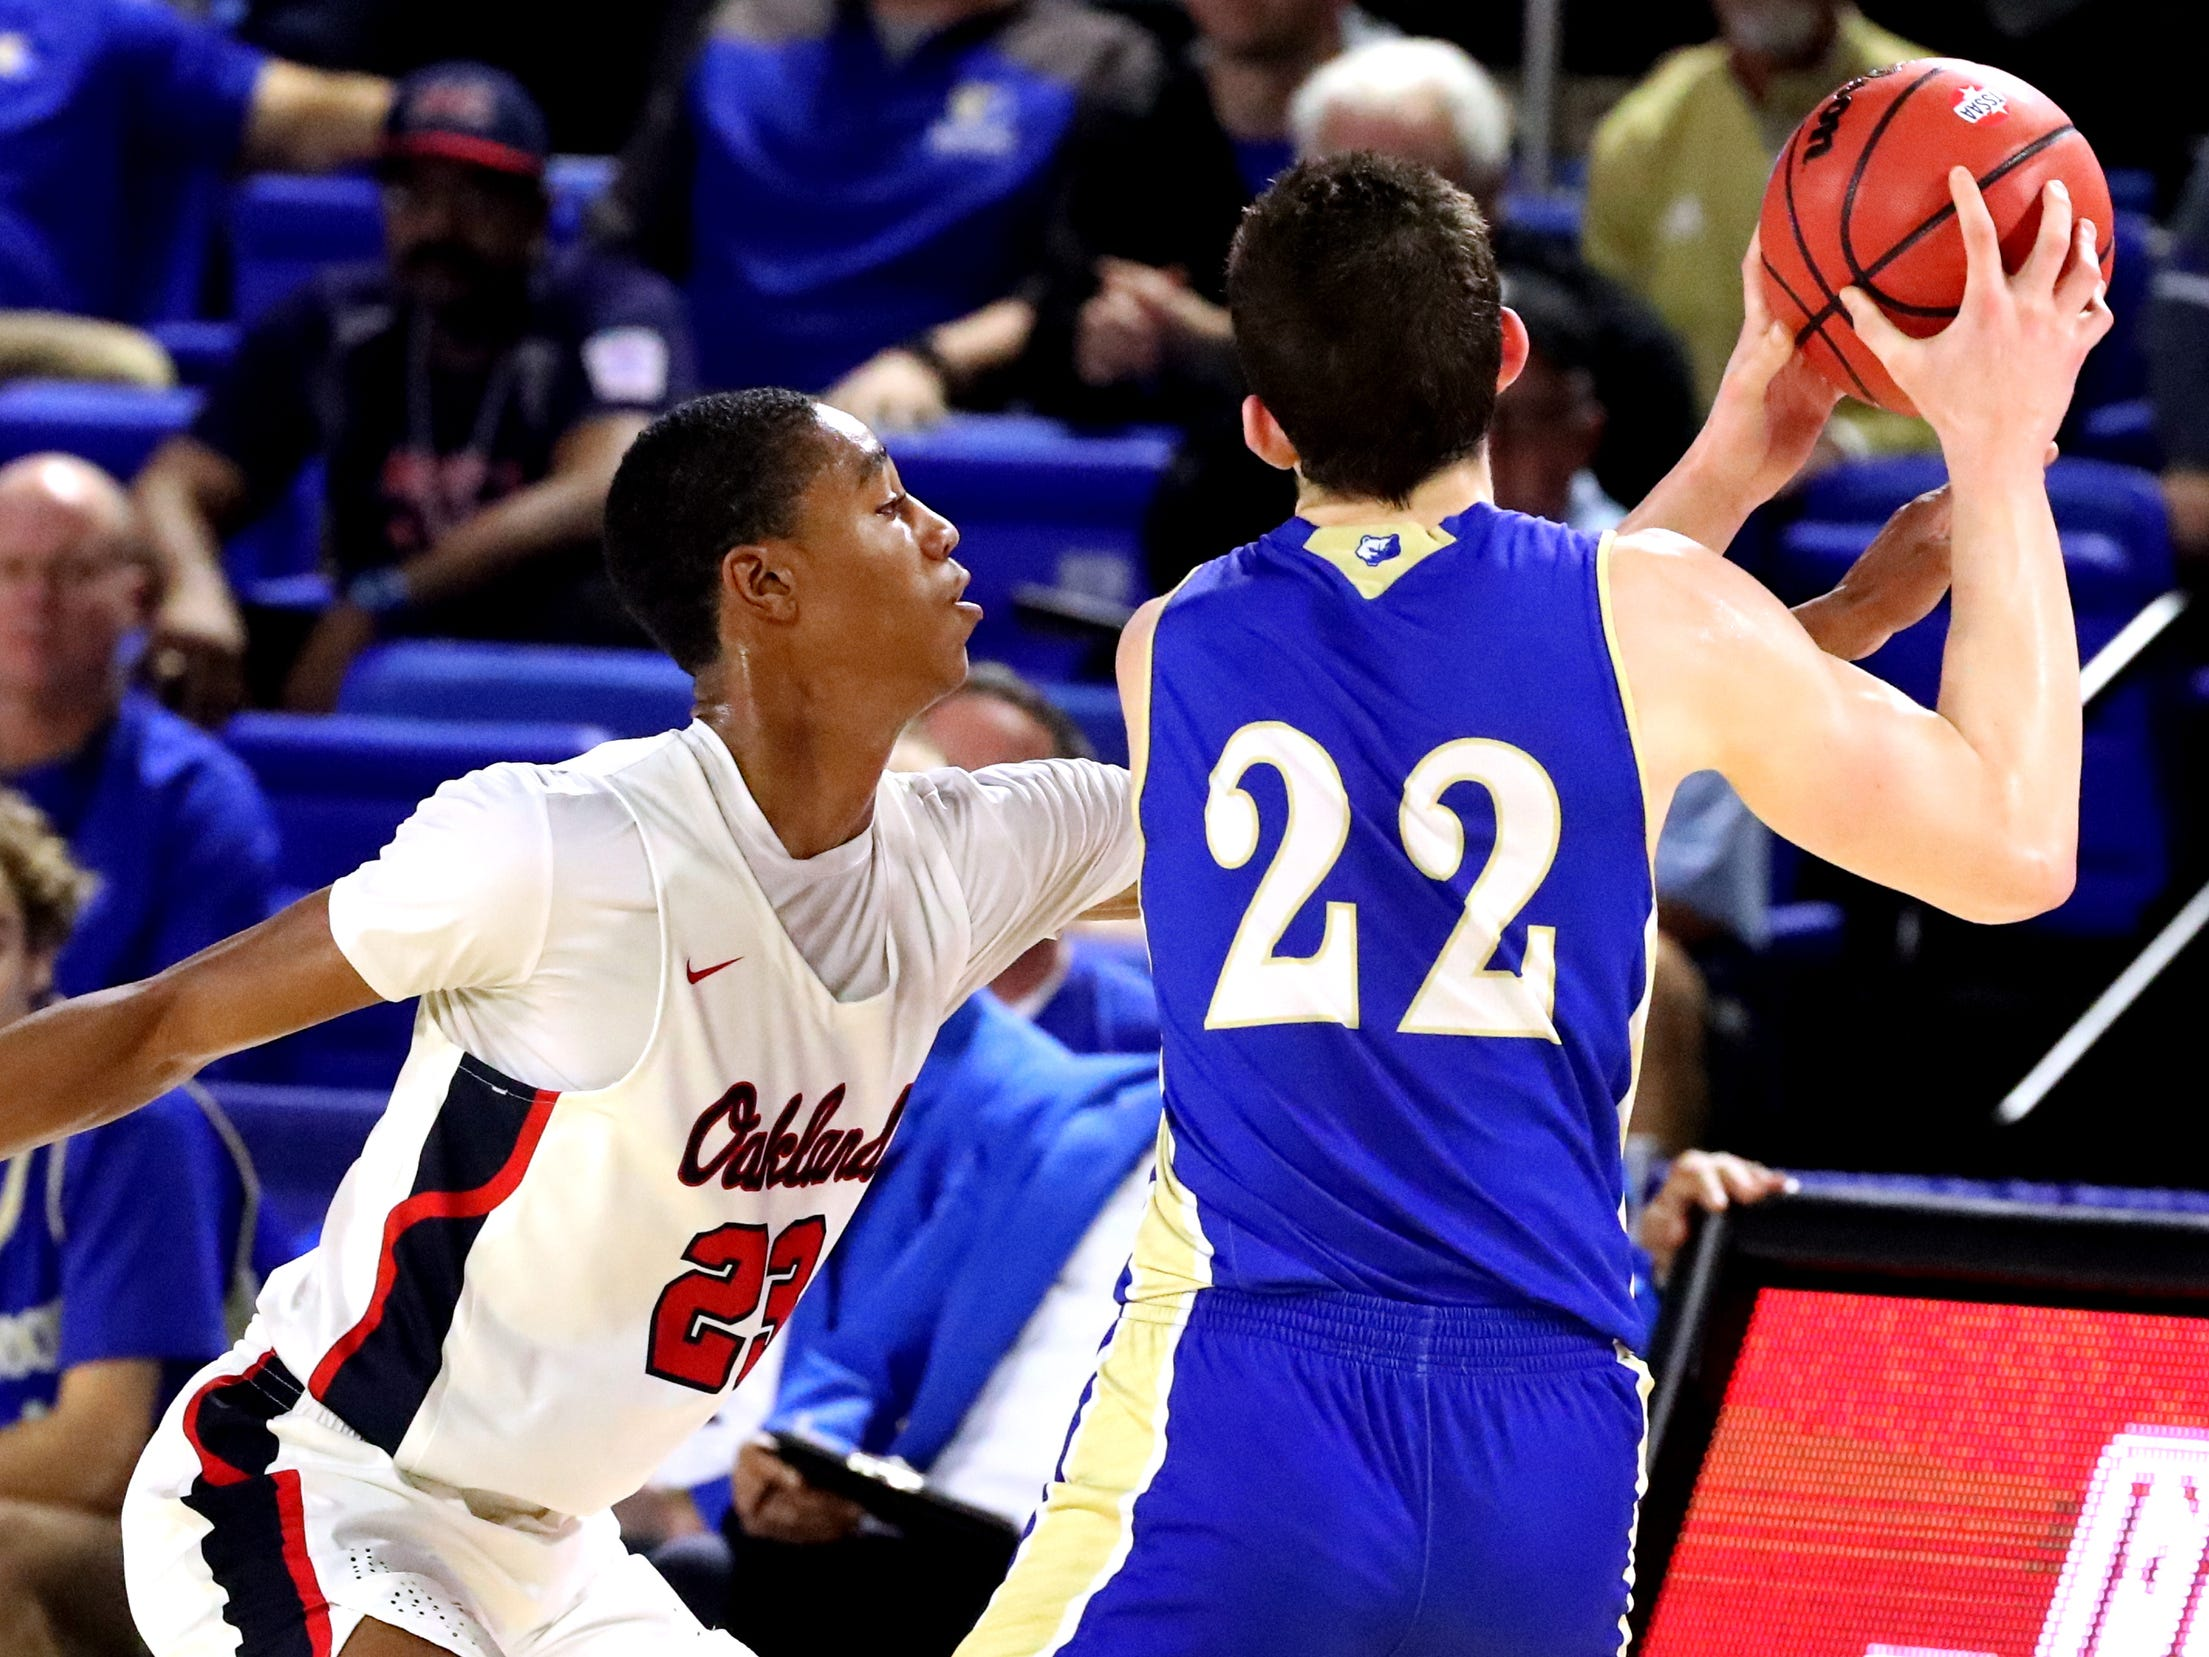 Oakland's Dorian Anderson (23) tries to take the ball away from Brentwood's Harry Lackey (22) during the quarterfinal round of the TSSAA Class AAA Boys State Tournament, on Thursday, March 14, 2019, at Murphy Center in Murfreesboro, Tenn.